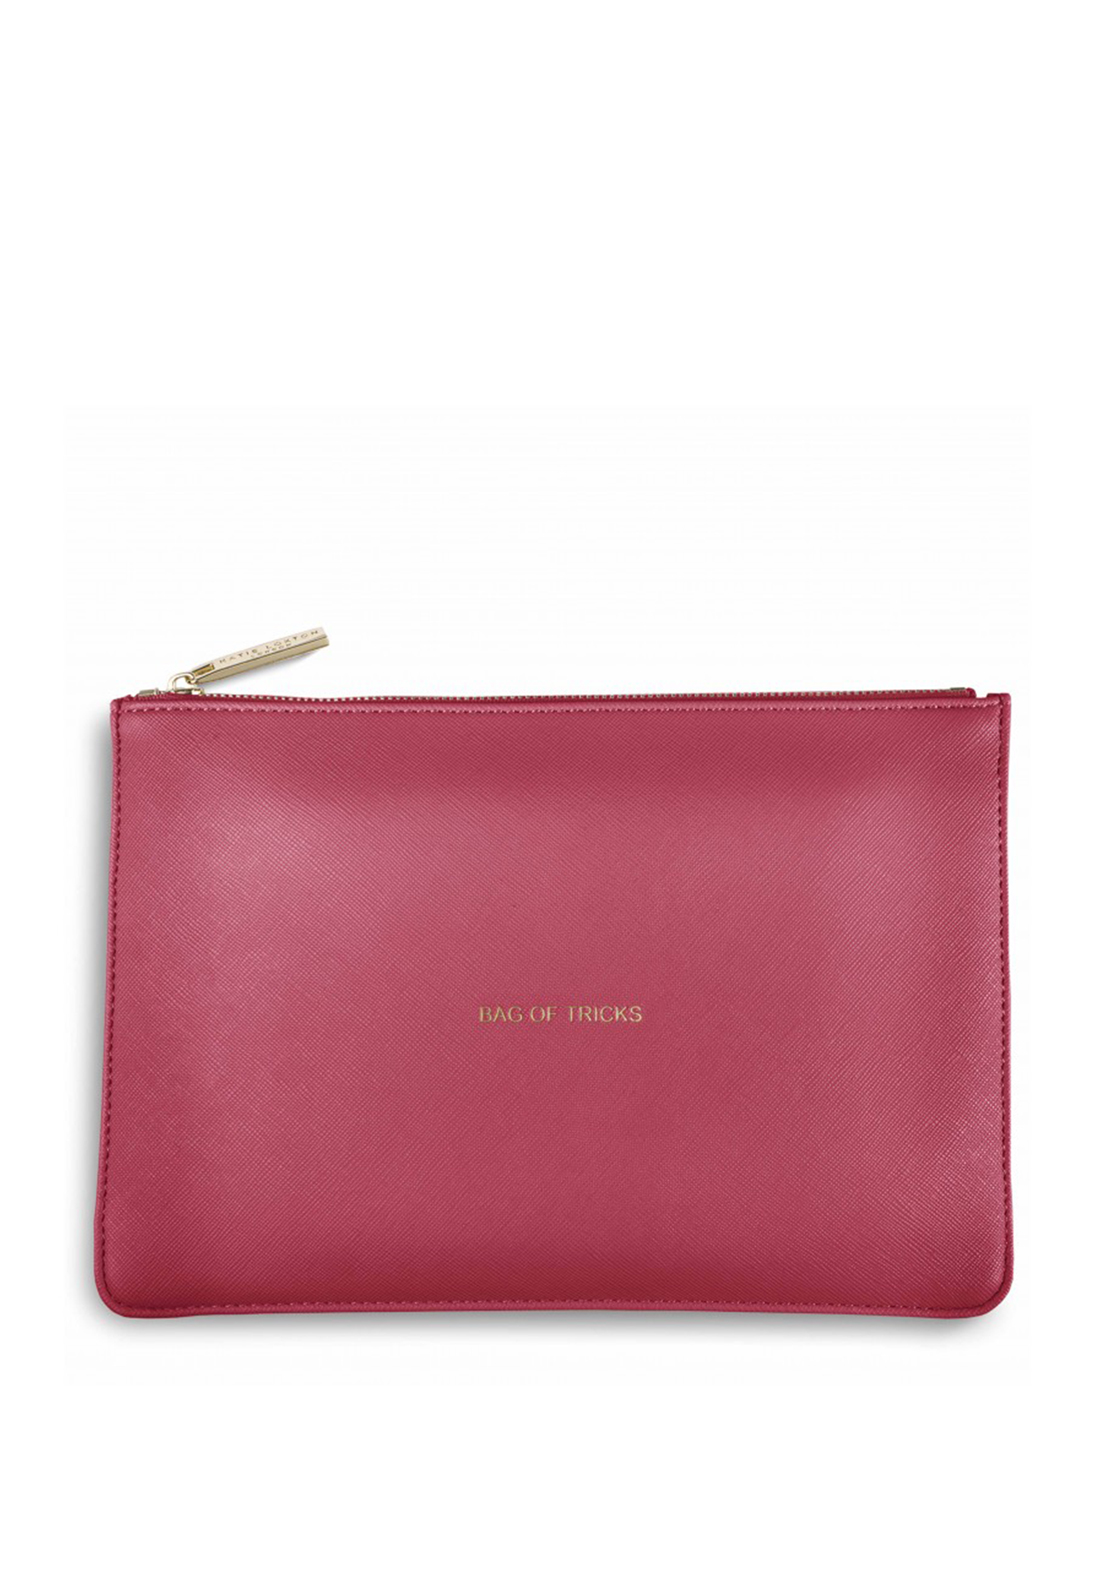 Katie Loxton Bag Of Tricks Pouch Bag, Coral Pink